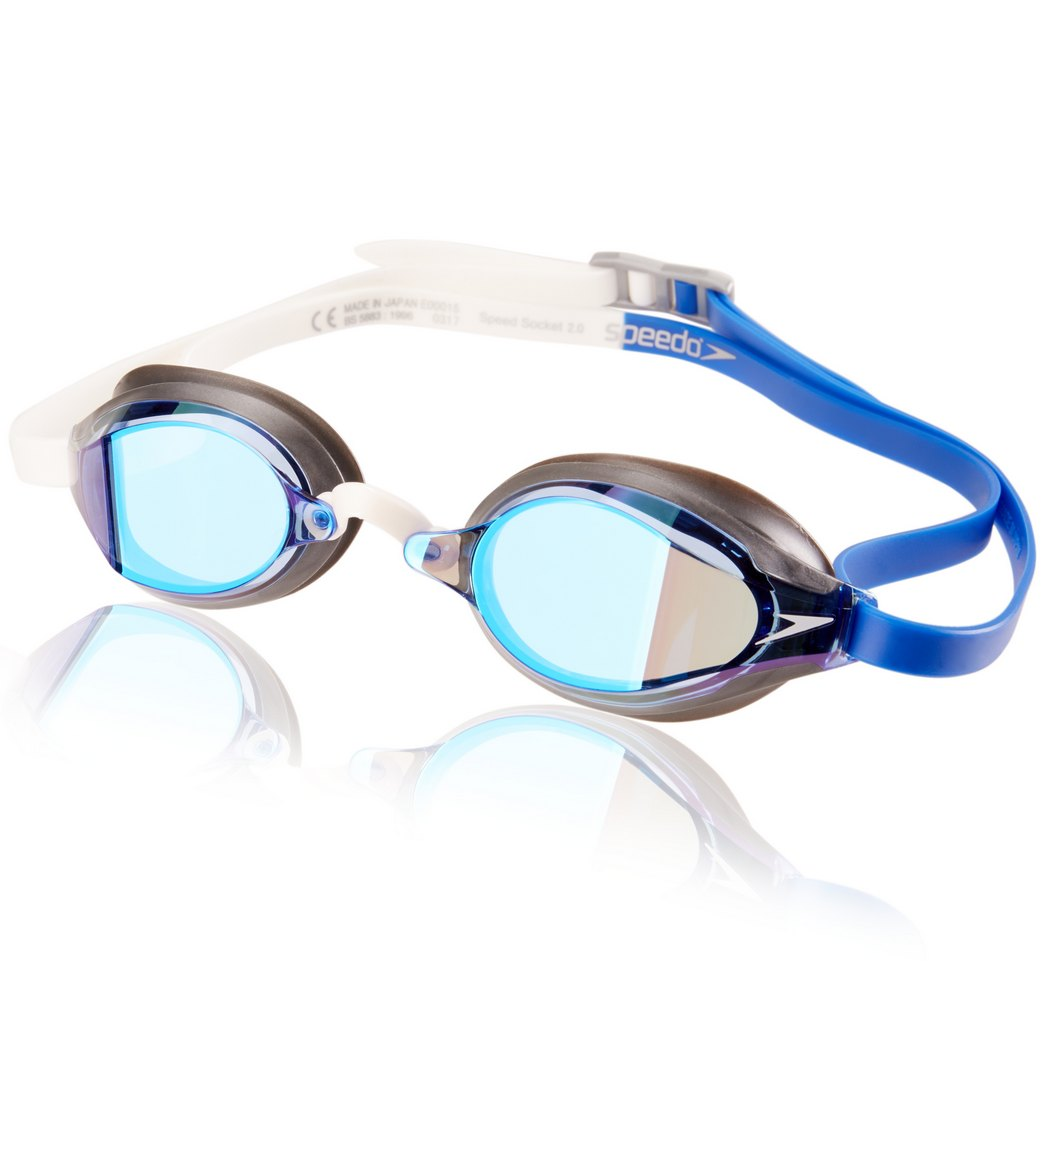 a32c81840dce0 Speedo Speed Socket 2.0 Mirrored Goggle at SwimOutlet.com